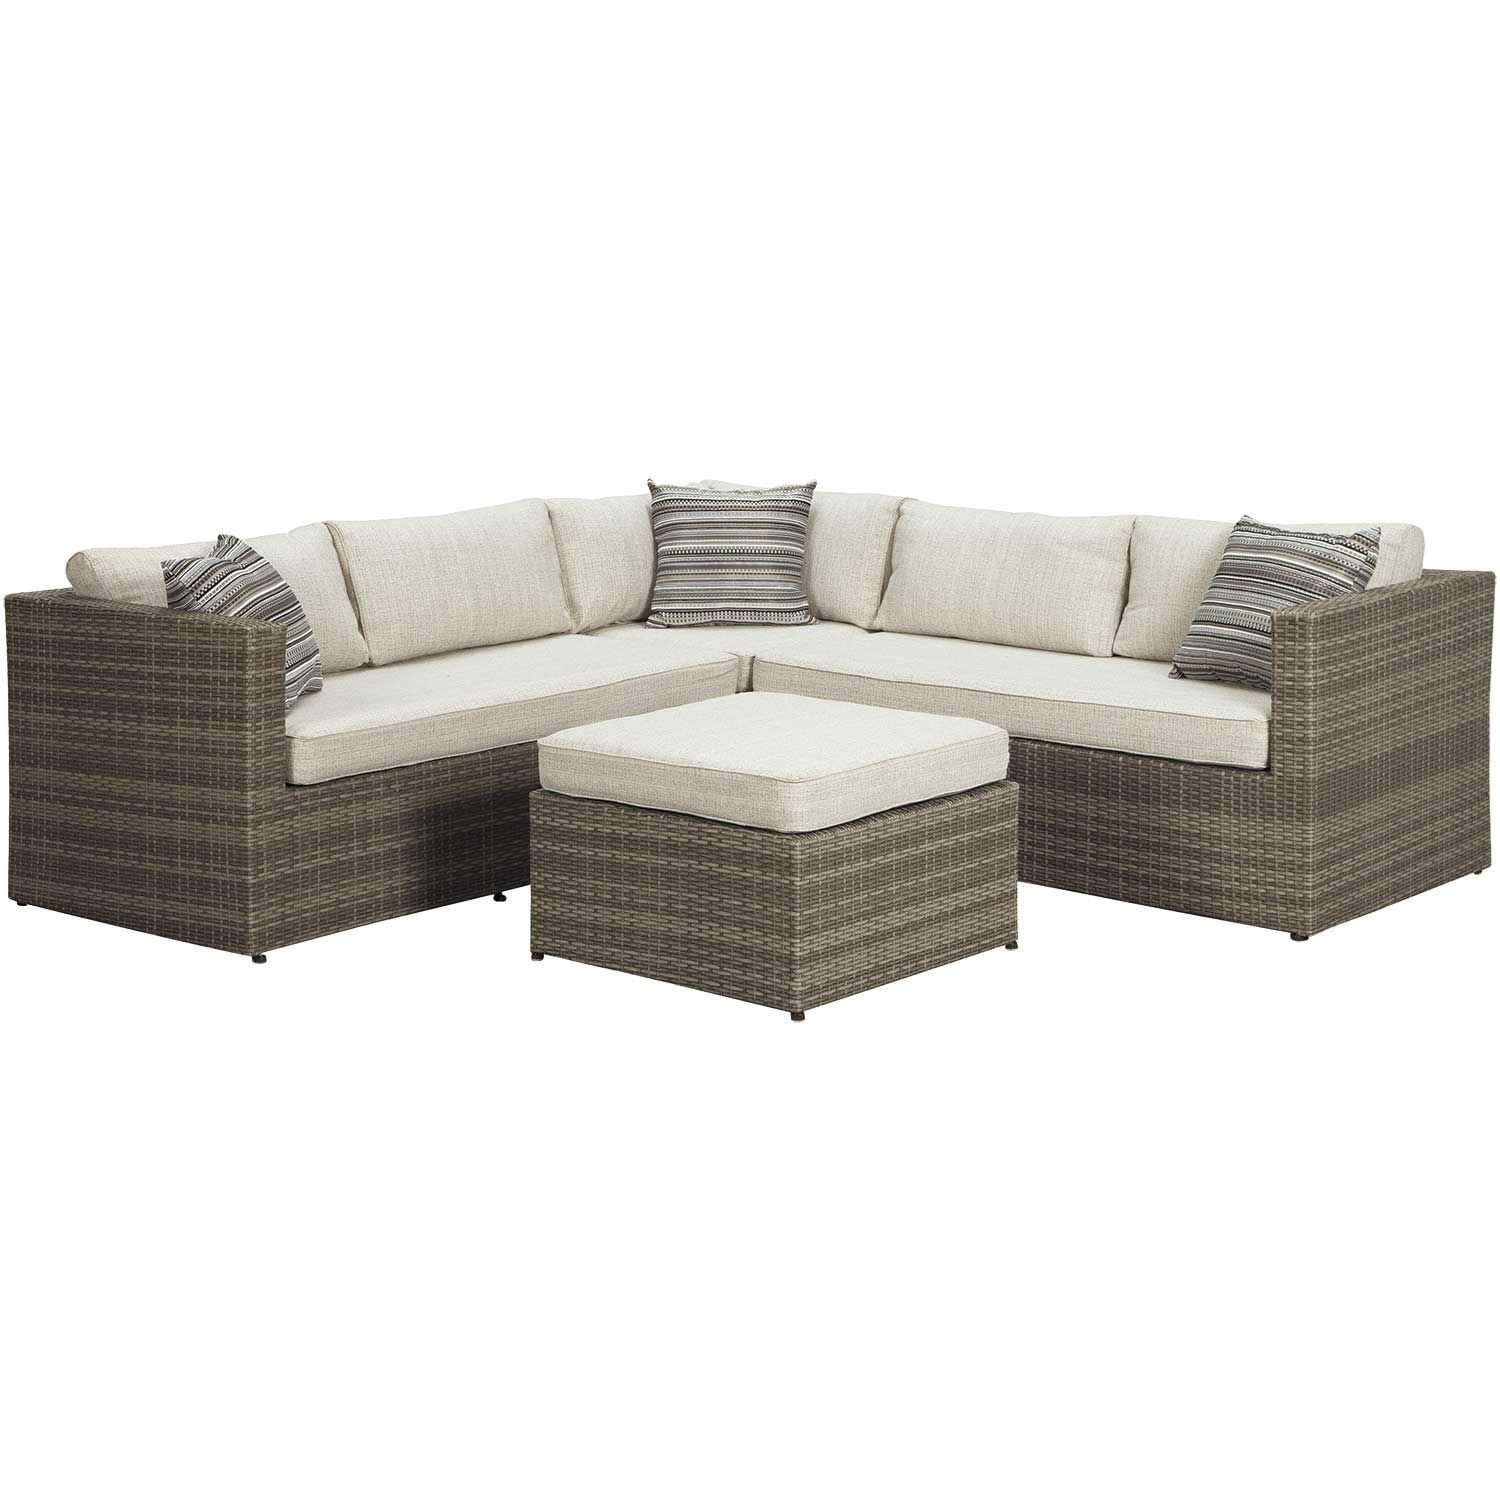 Outdoor Furniture Covers Near Me: Peckham Park 5 Piece Sectional P320-SECT